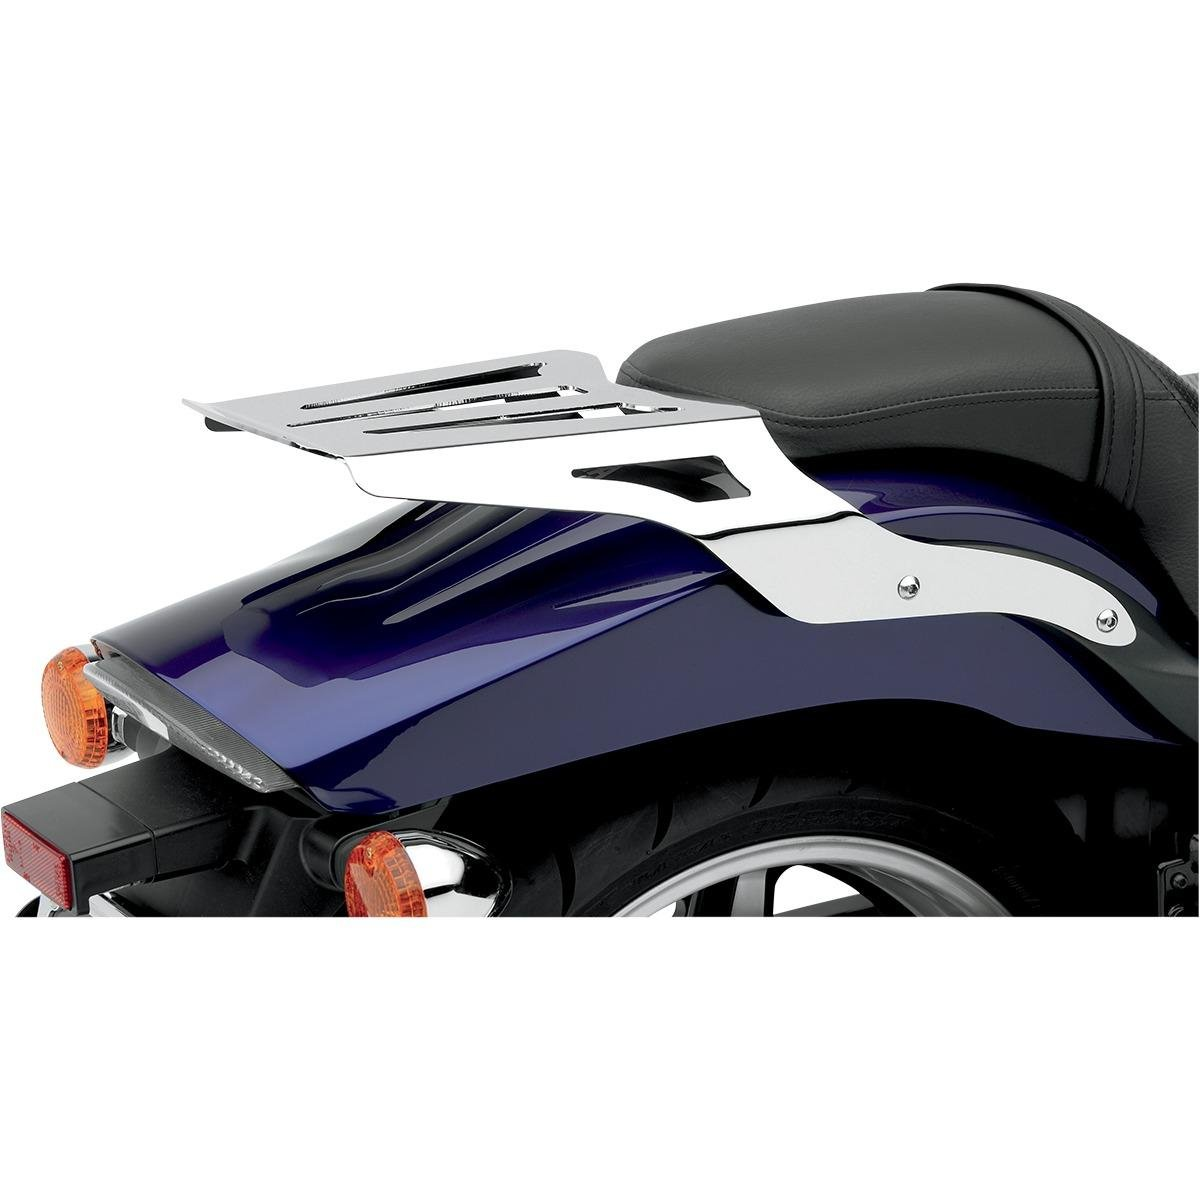 Cobra Formed Solo Luggage Rack 02-4265